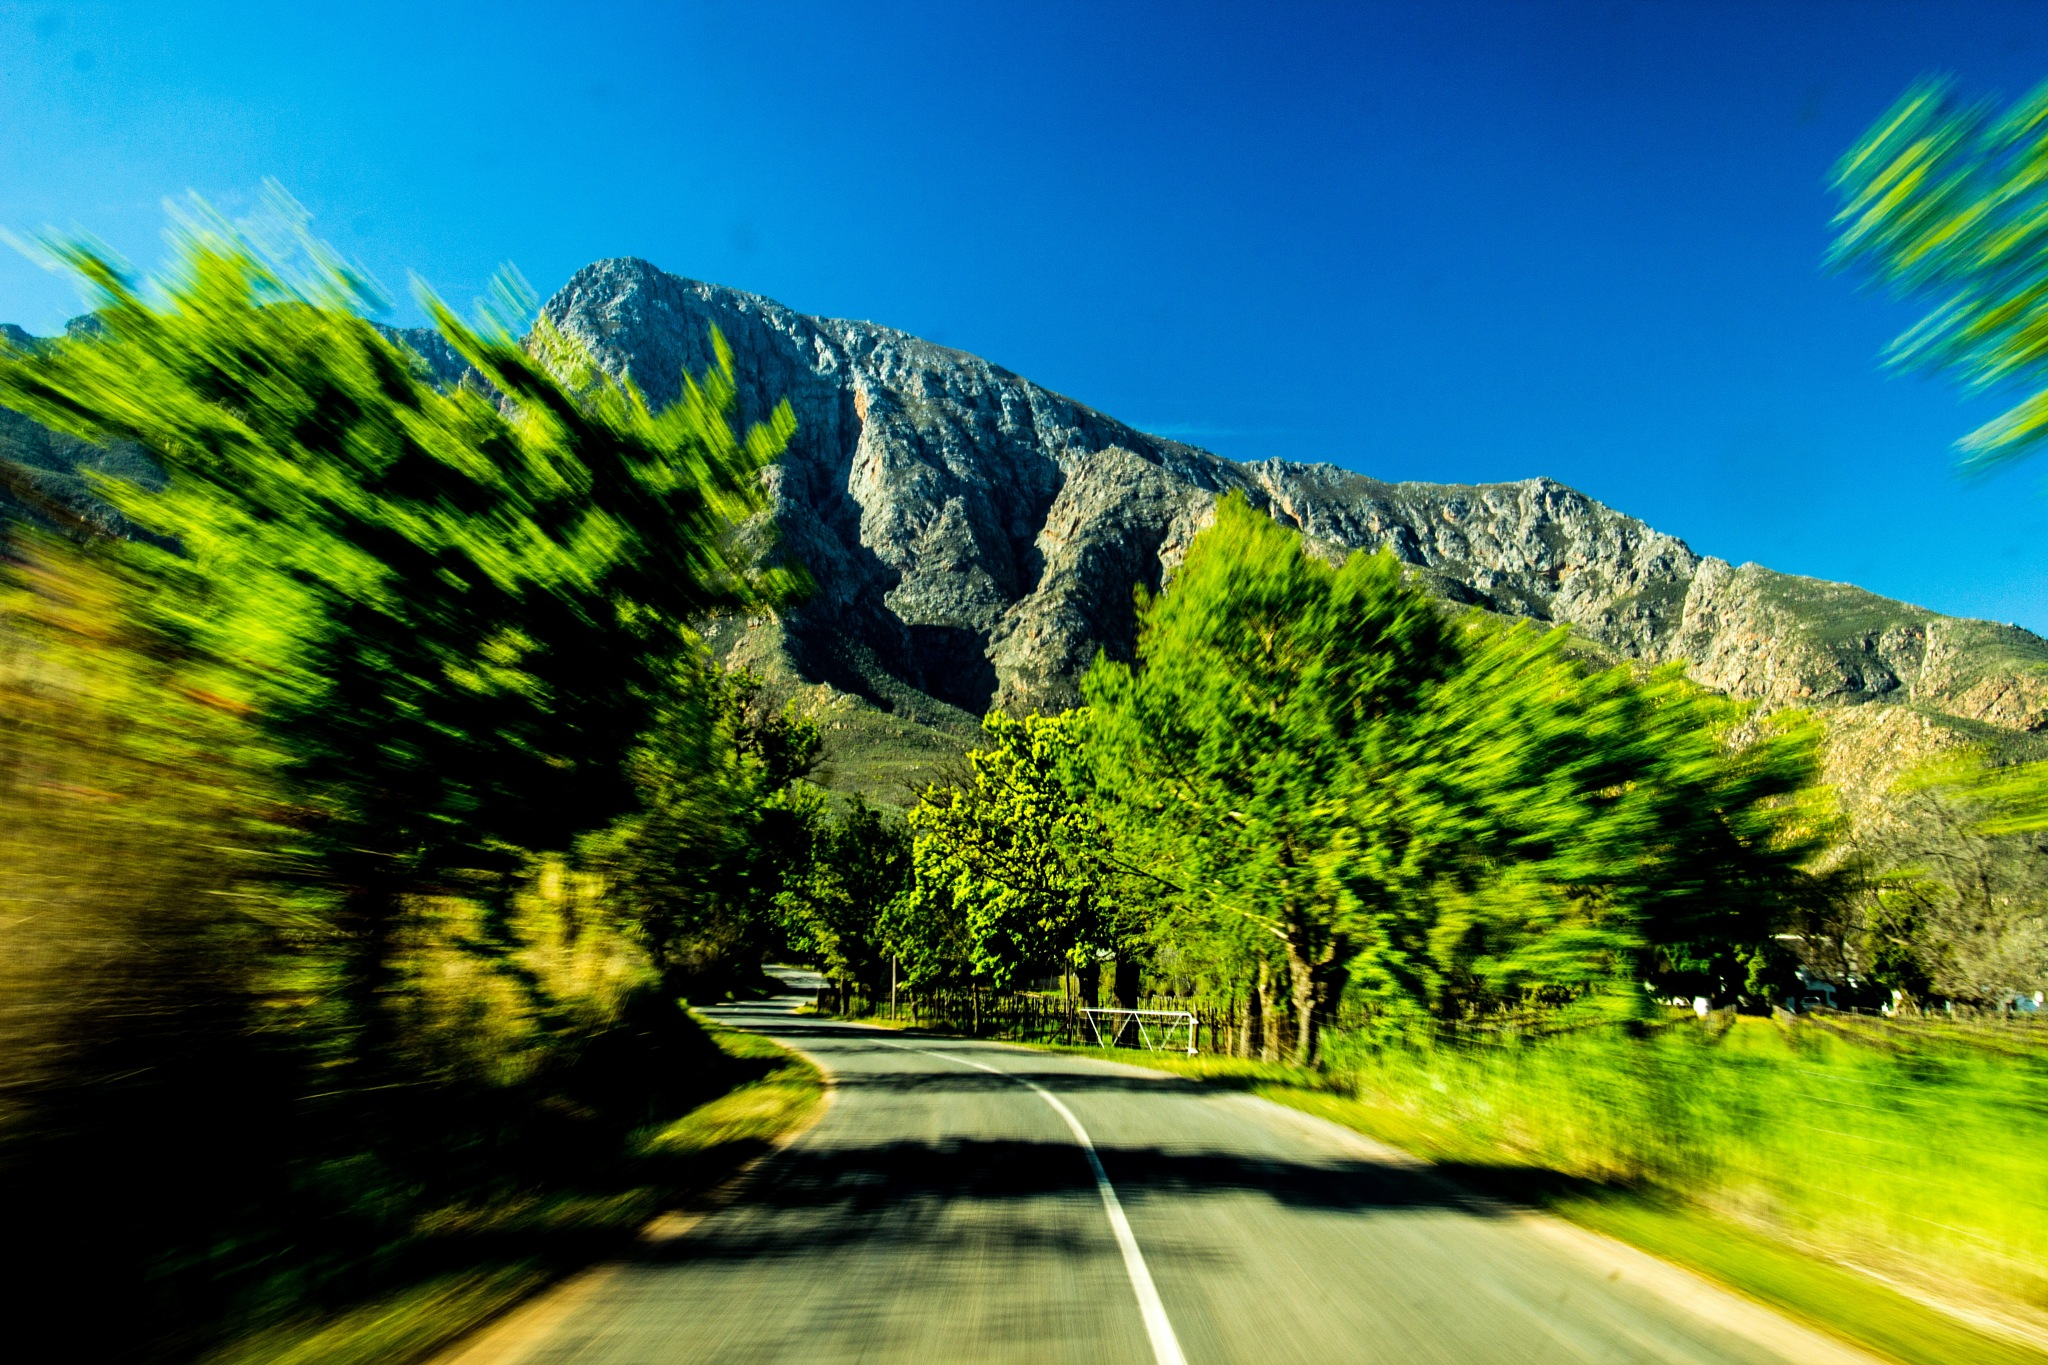 A lane of trees at speed by Nauta Piscatorque